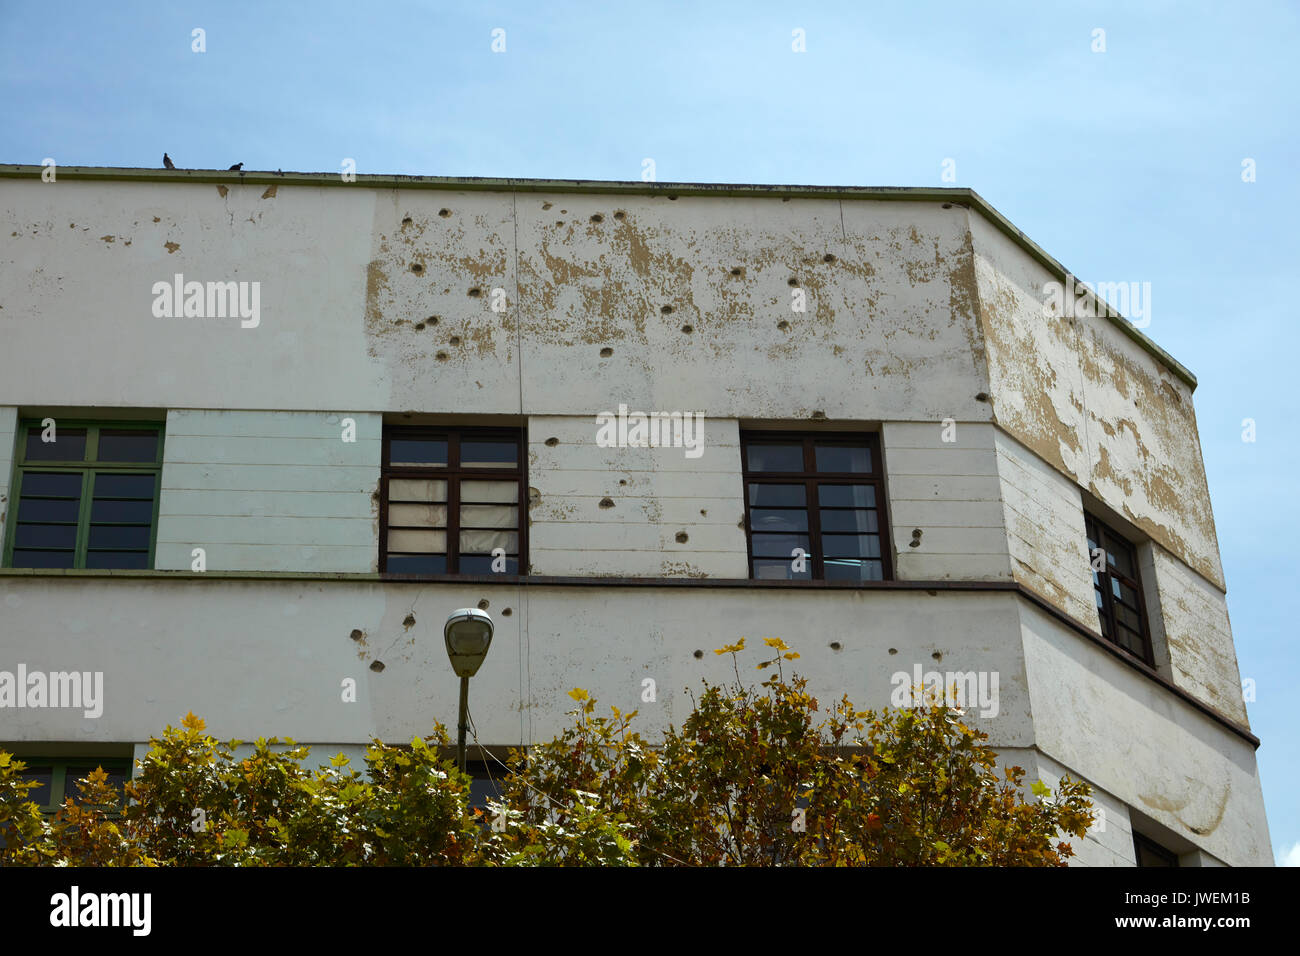 Building with bullet holes in Plaza Murillo (scene of many coups and conflicts), central La Paz, Bolivia, South America - Stock Image